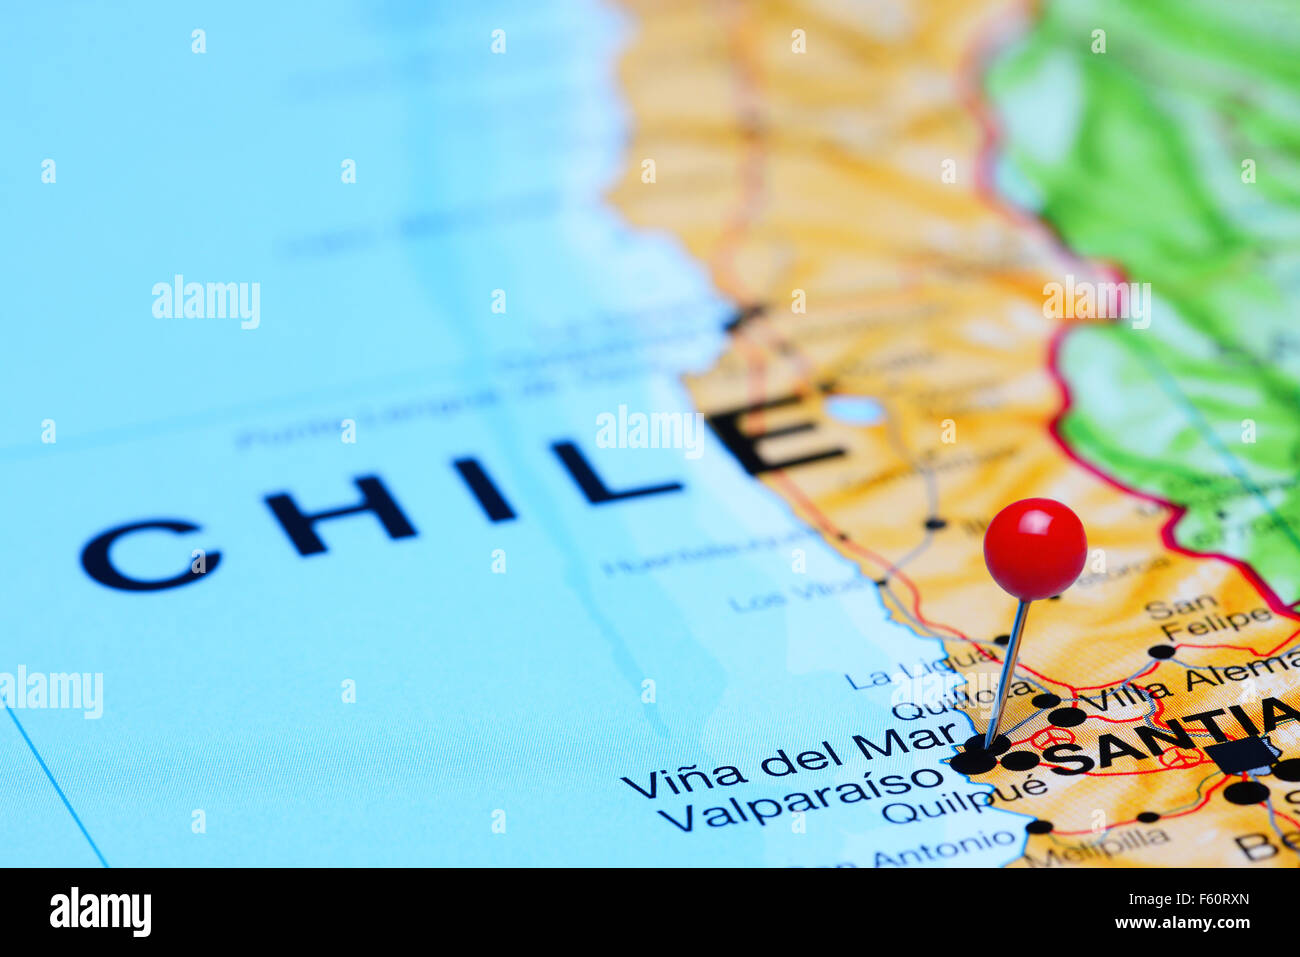 Vina Del Mar Pinned On A Map Of Chile Stock Photo Royalty Free - Viña del mar map